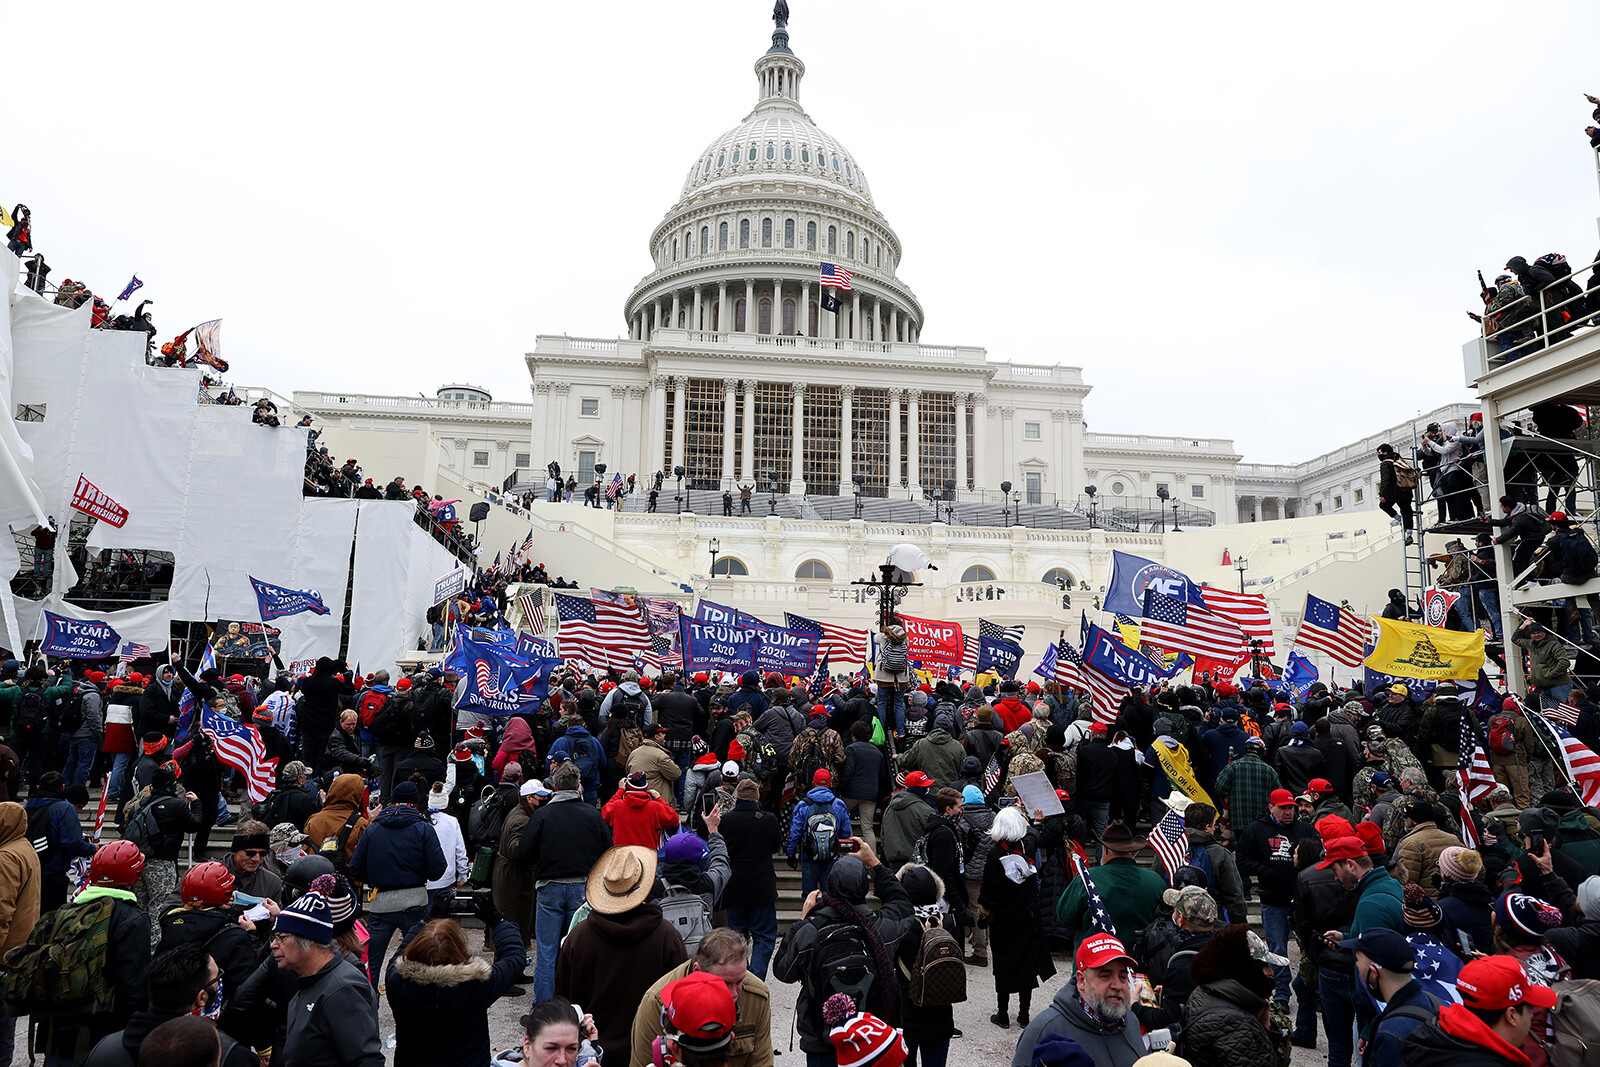 <i>Tasos Katopodis/Getty Images</i><br> Pro-Trump protesters here stormed the U.S. Capitol on January 6